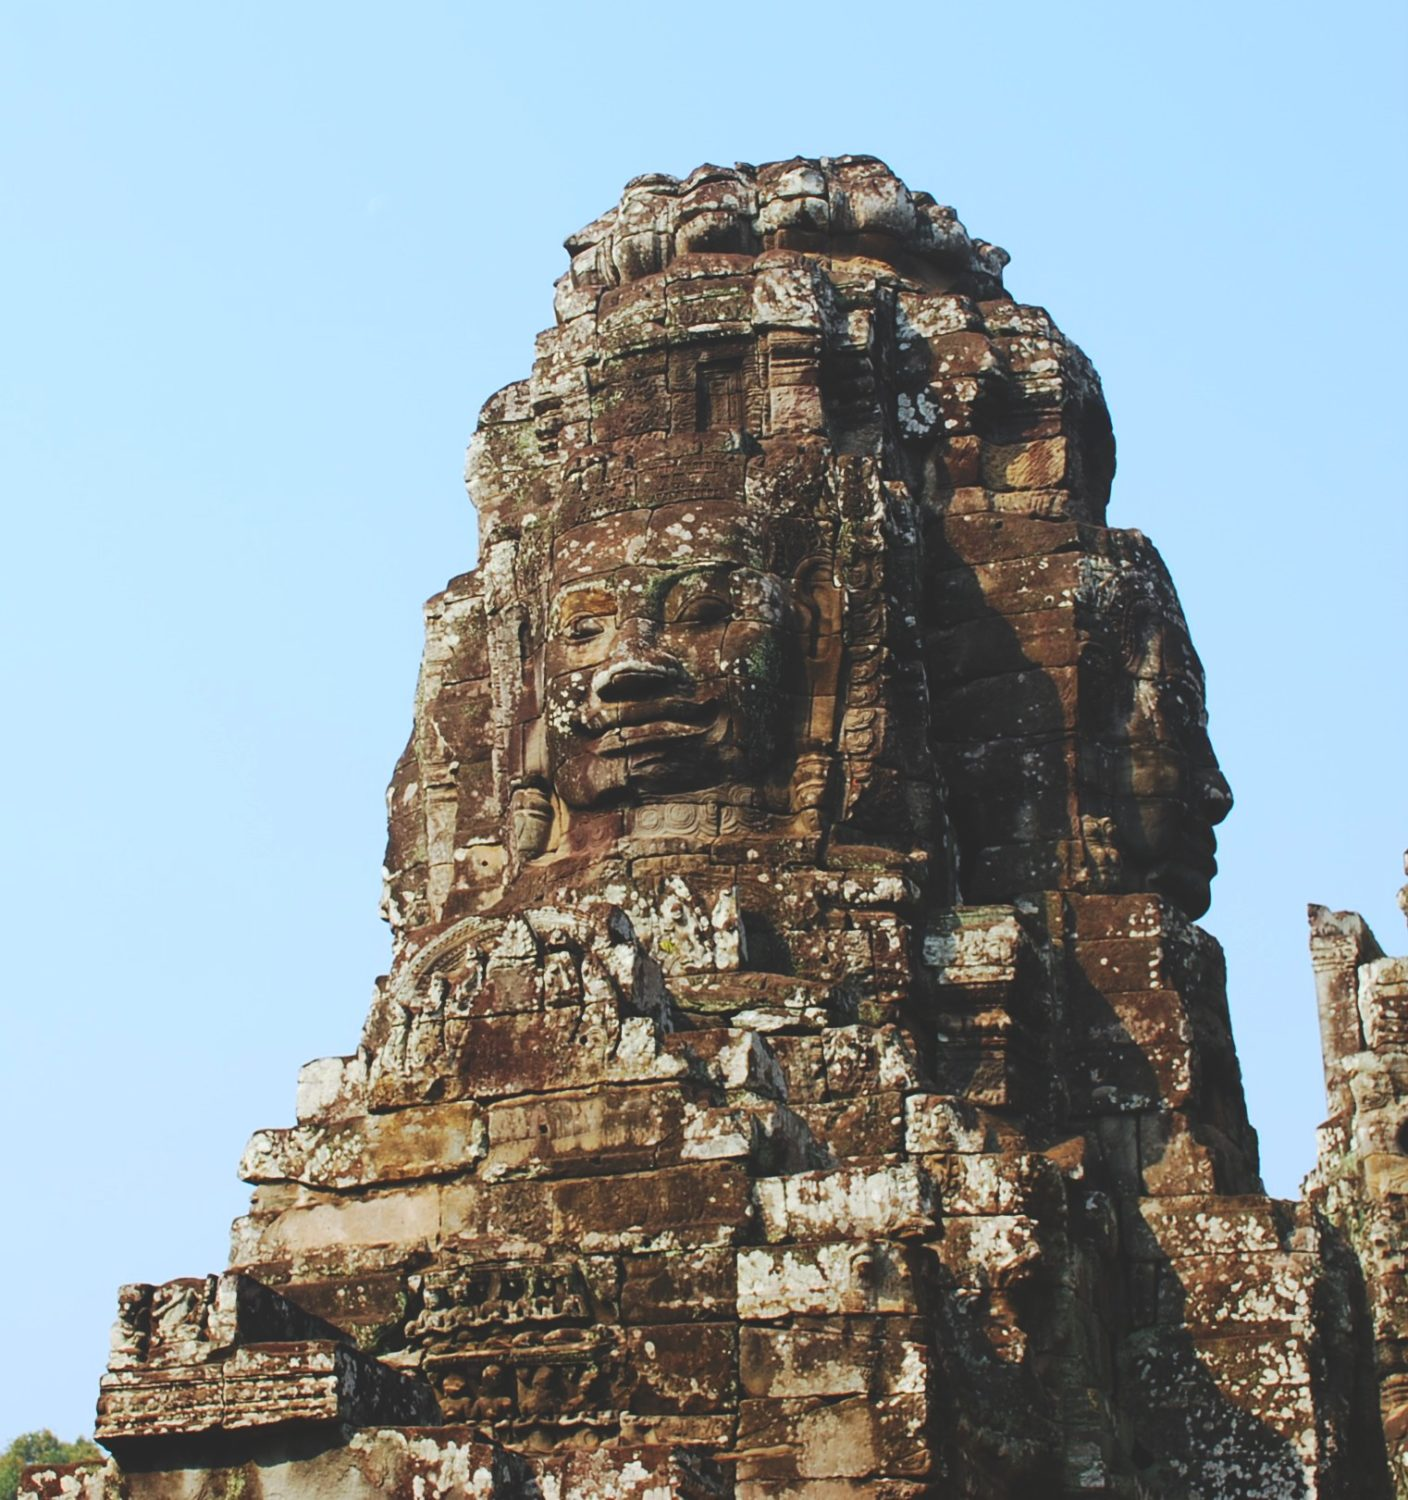 When I visited, I was unprepared for how overwhelmingly big it can. So you have an easier time navigating, here's a small guide for visiting Angkor Wat!